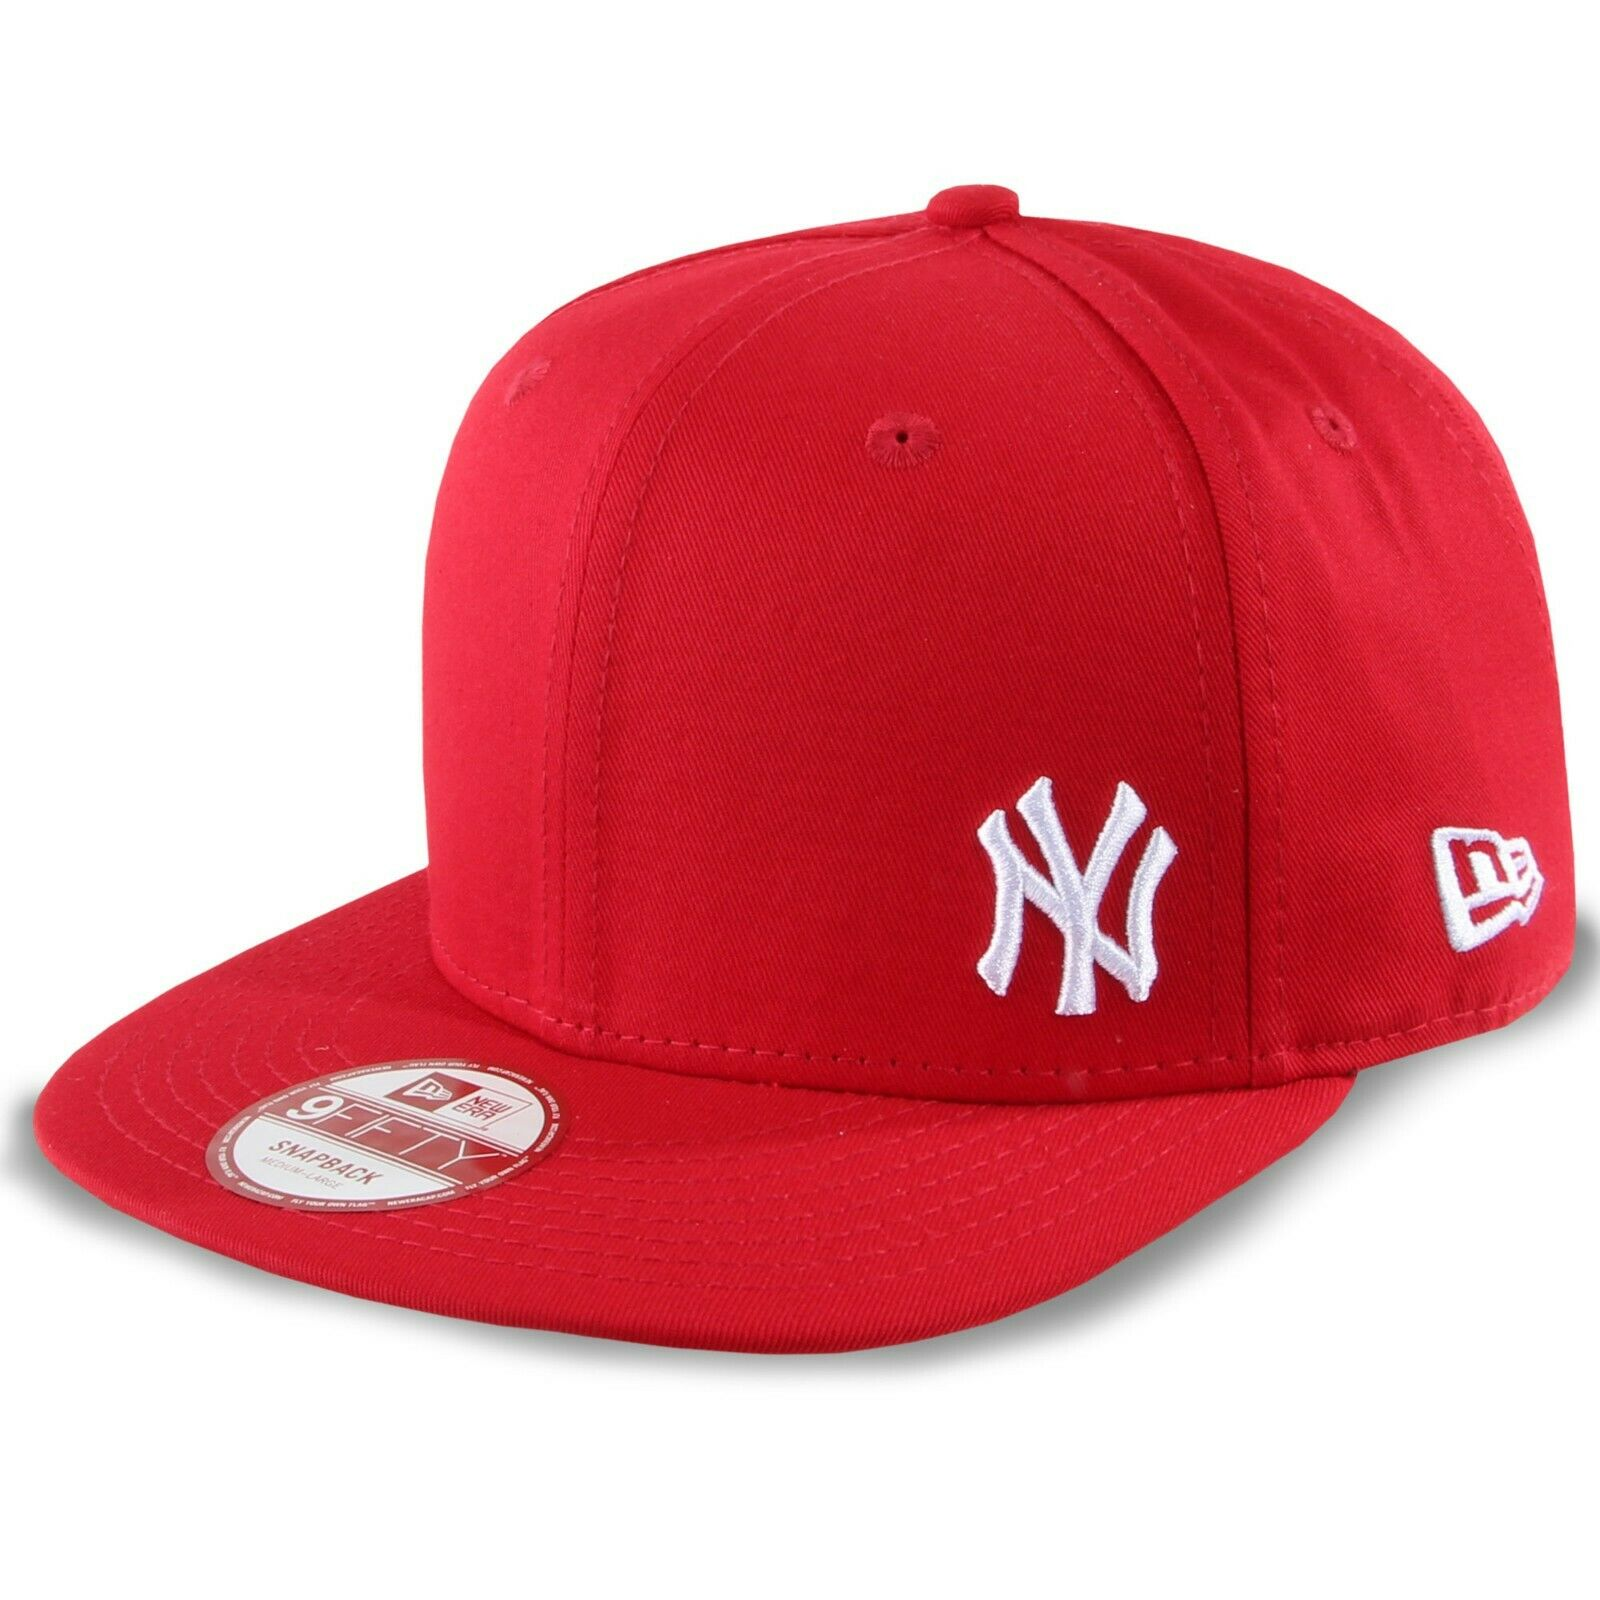 New York Yankees #K13